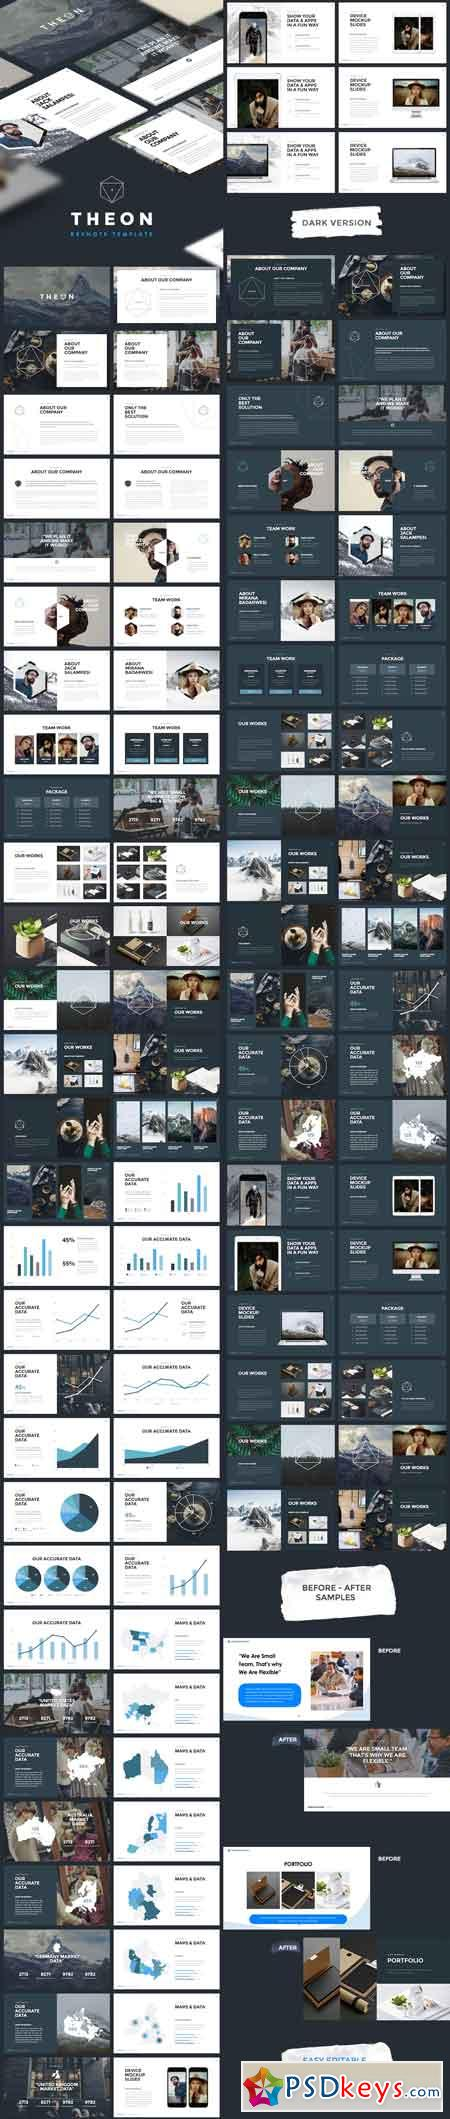 theon - minimal & creative keynote template 17653000 » free, Powerpoint templates